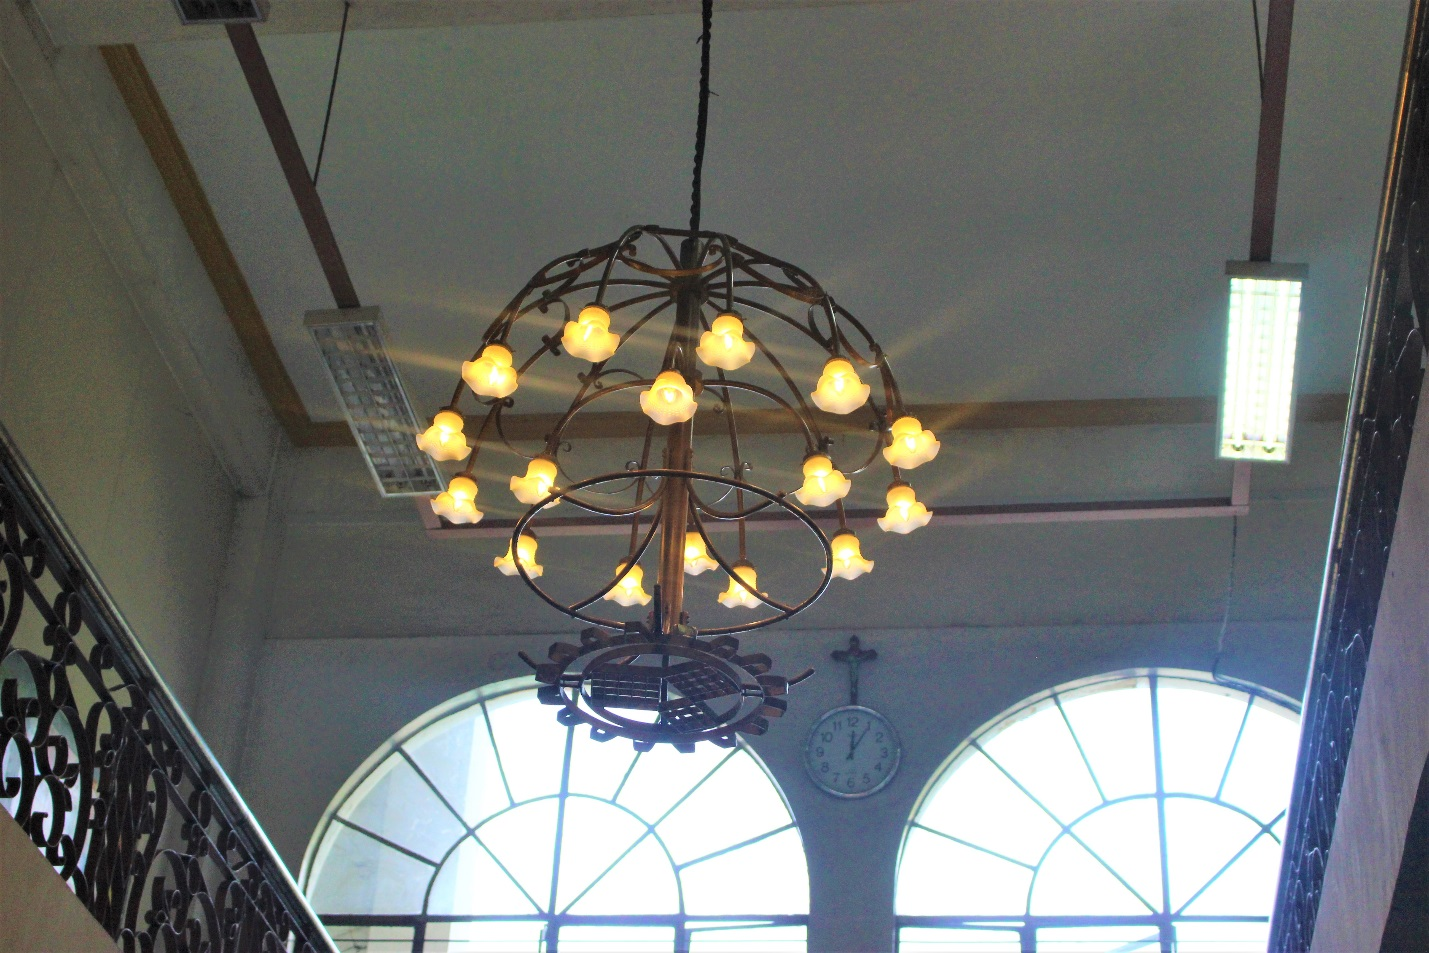 Shining Once More like TUP herself: the Chandeliers at the COS-CLA Lobby